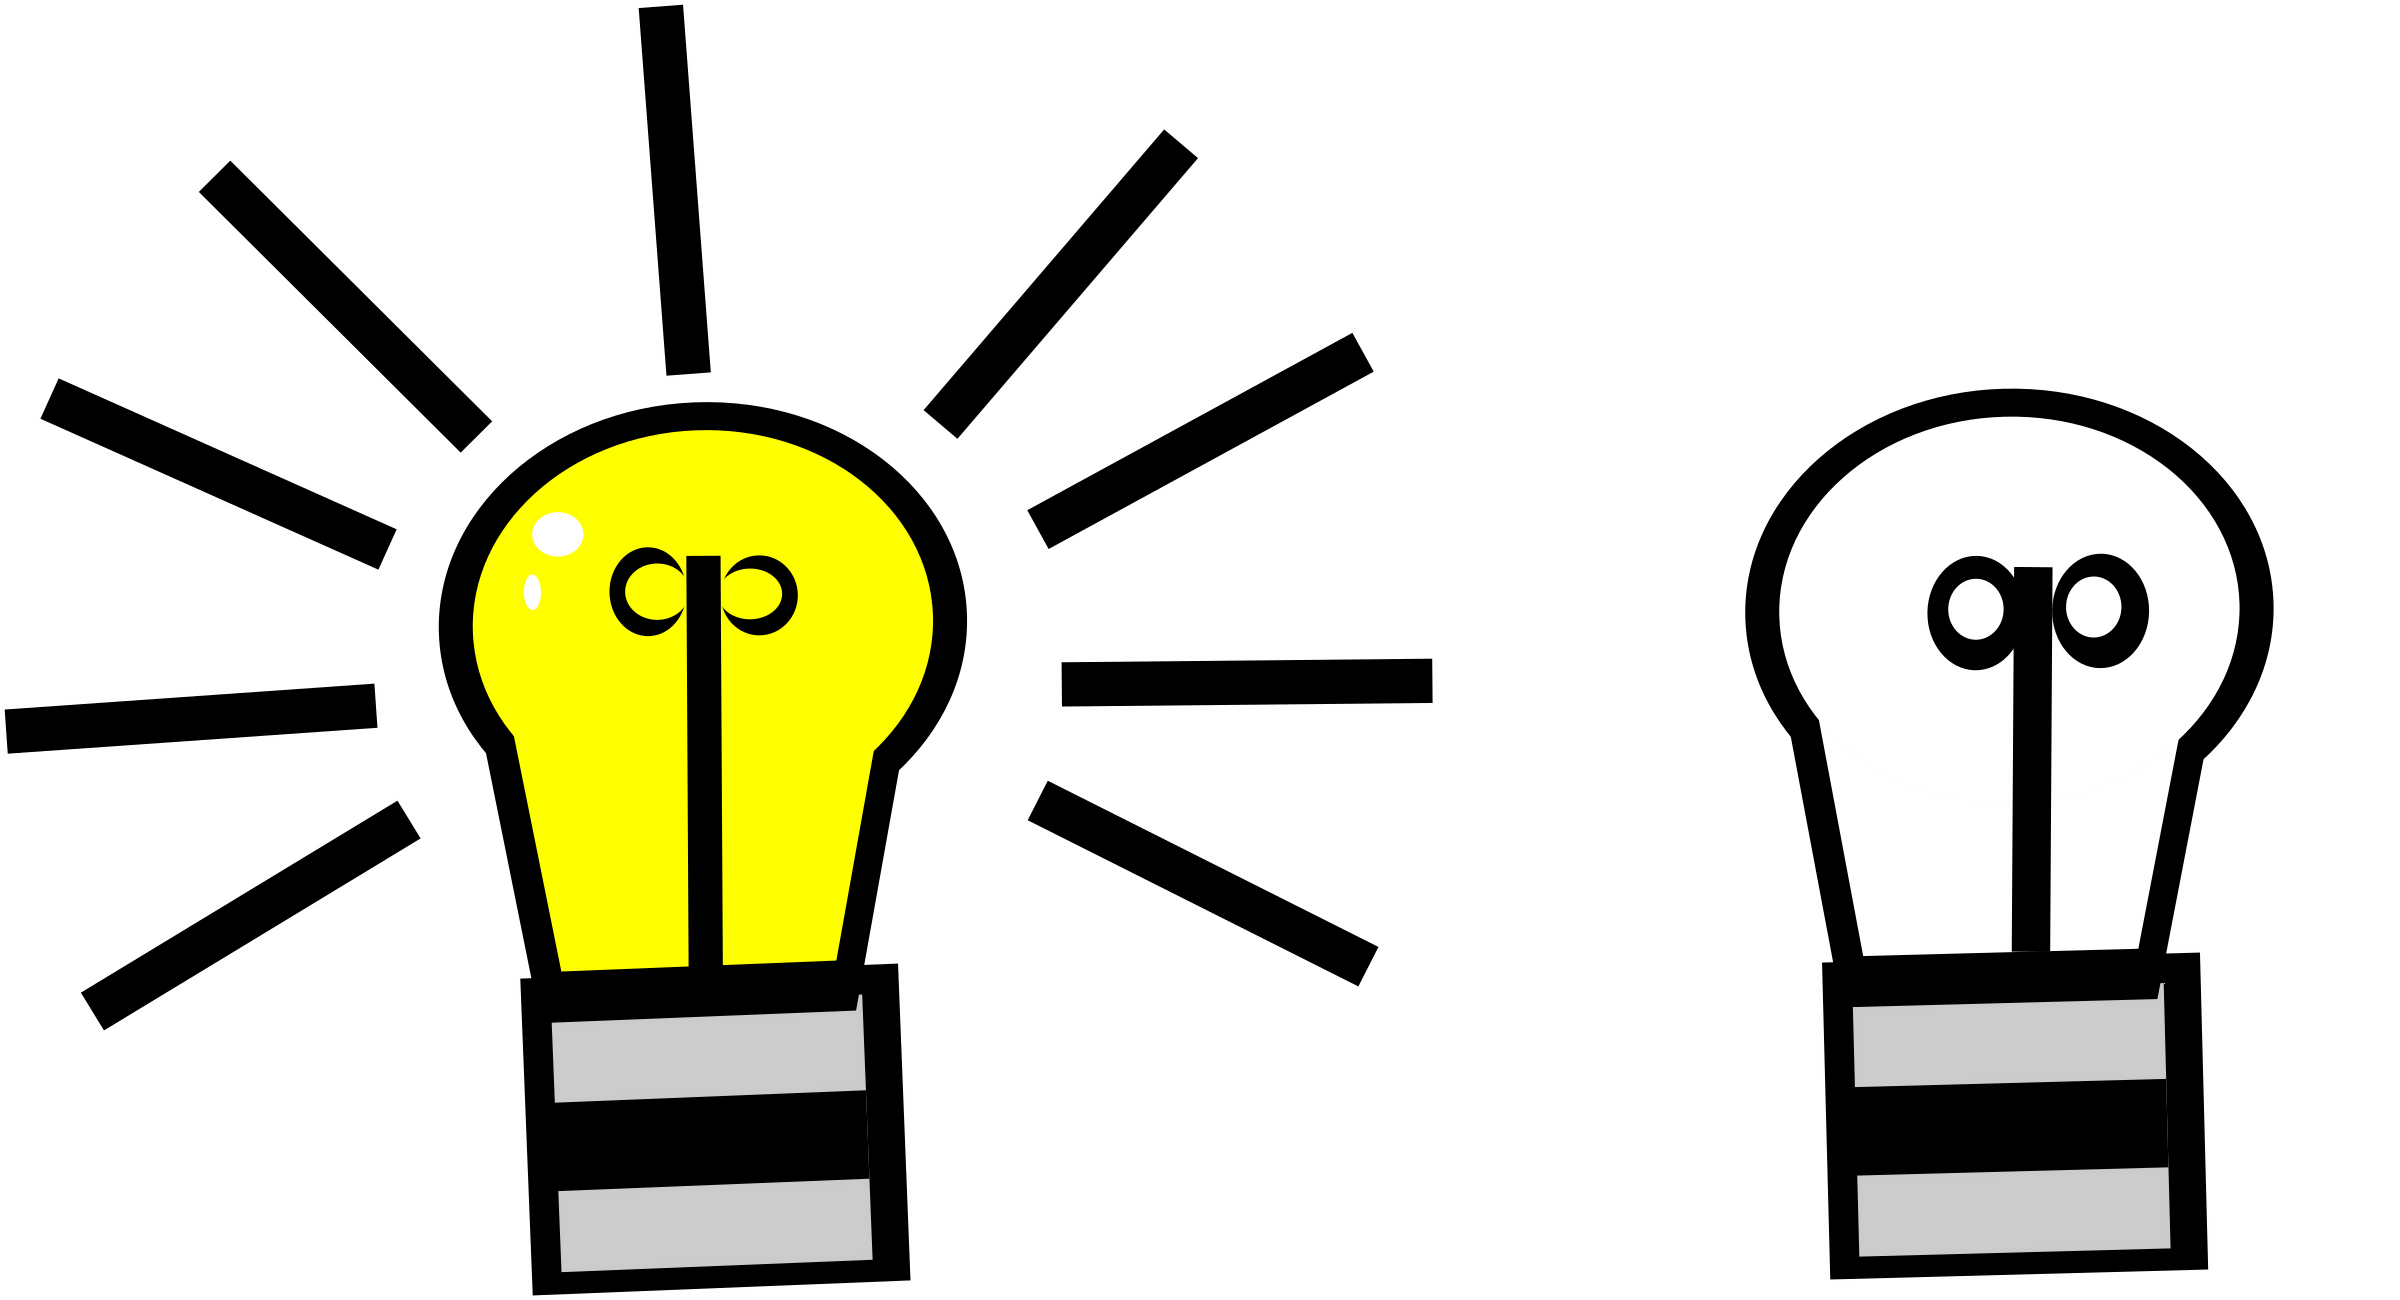 Electrical clipart electric lamp. Best light switch off